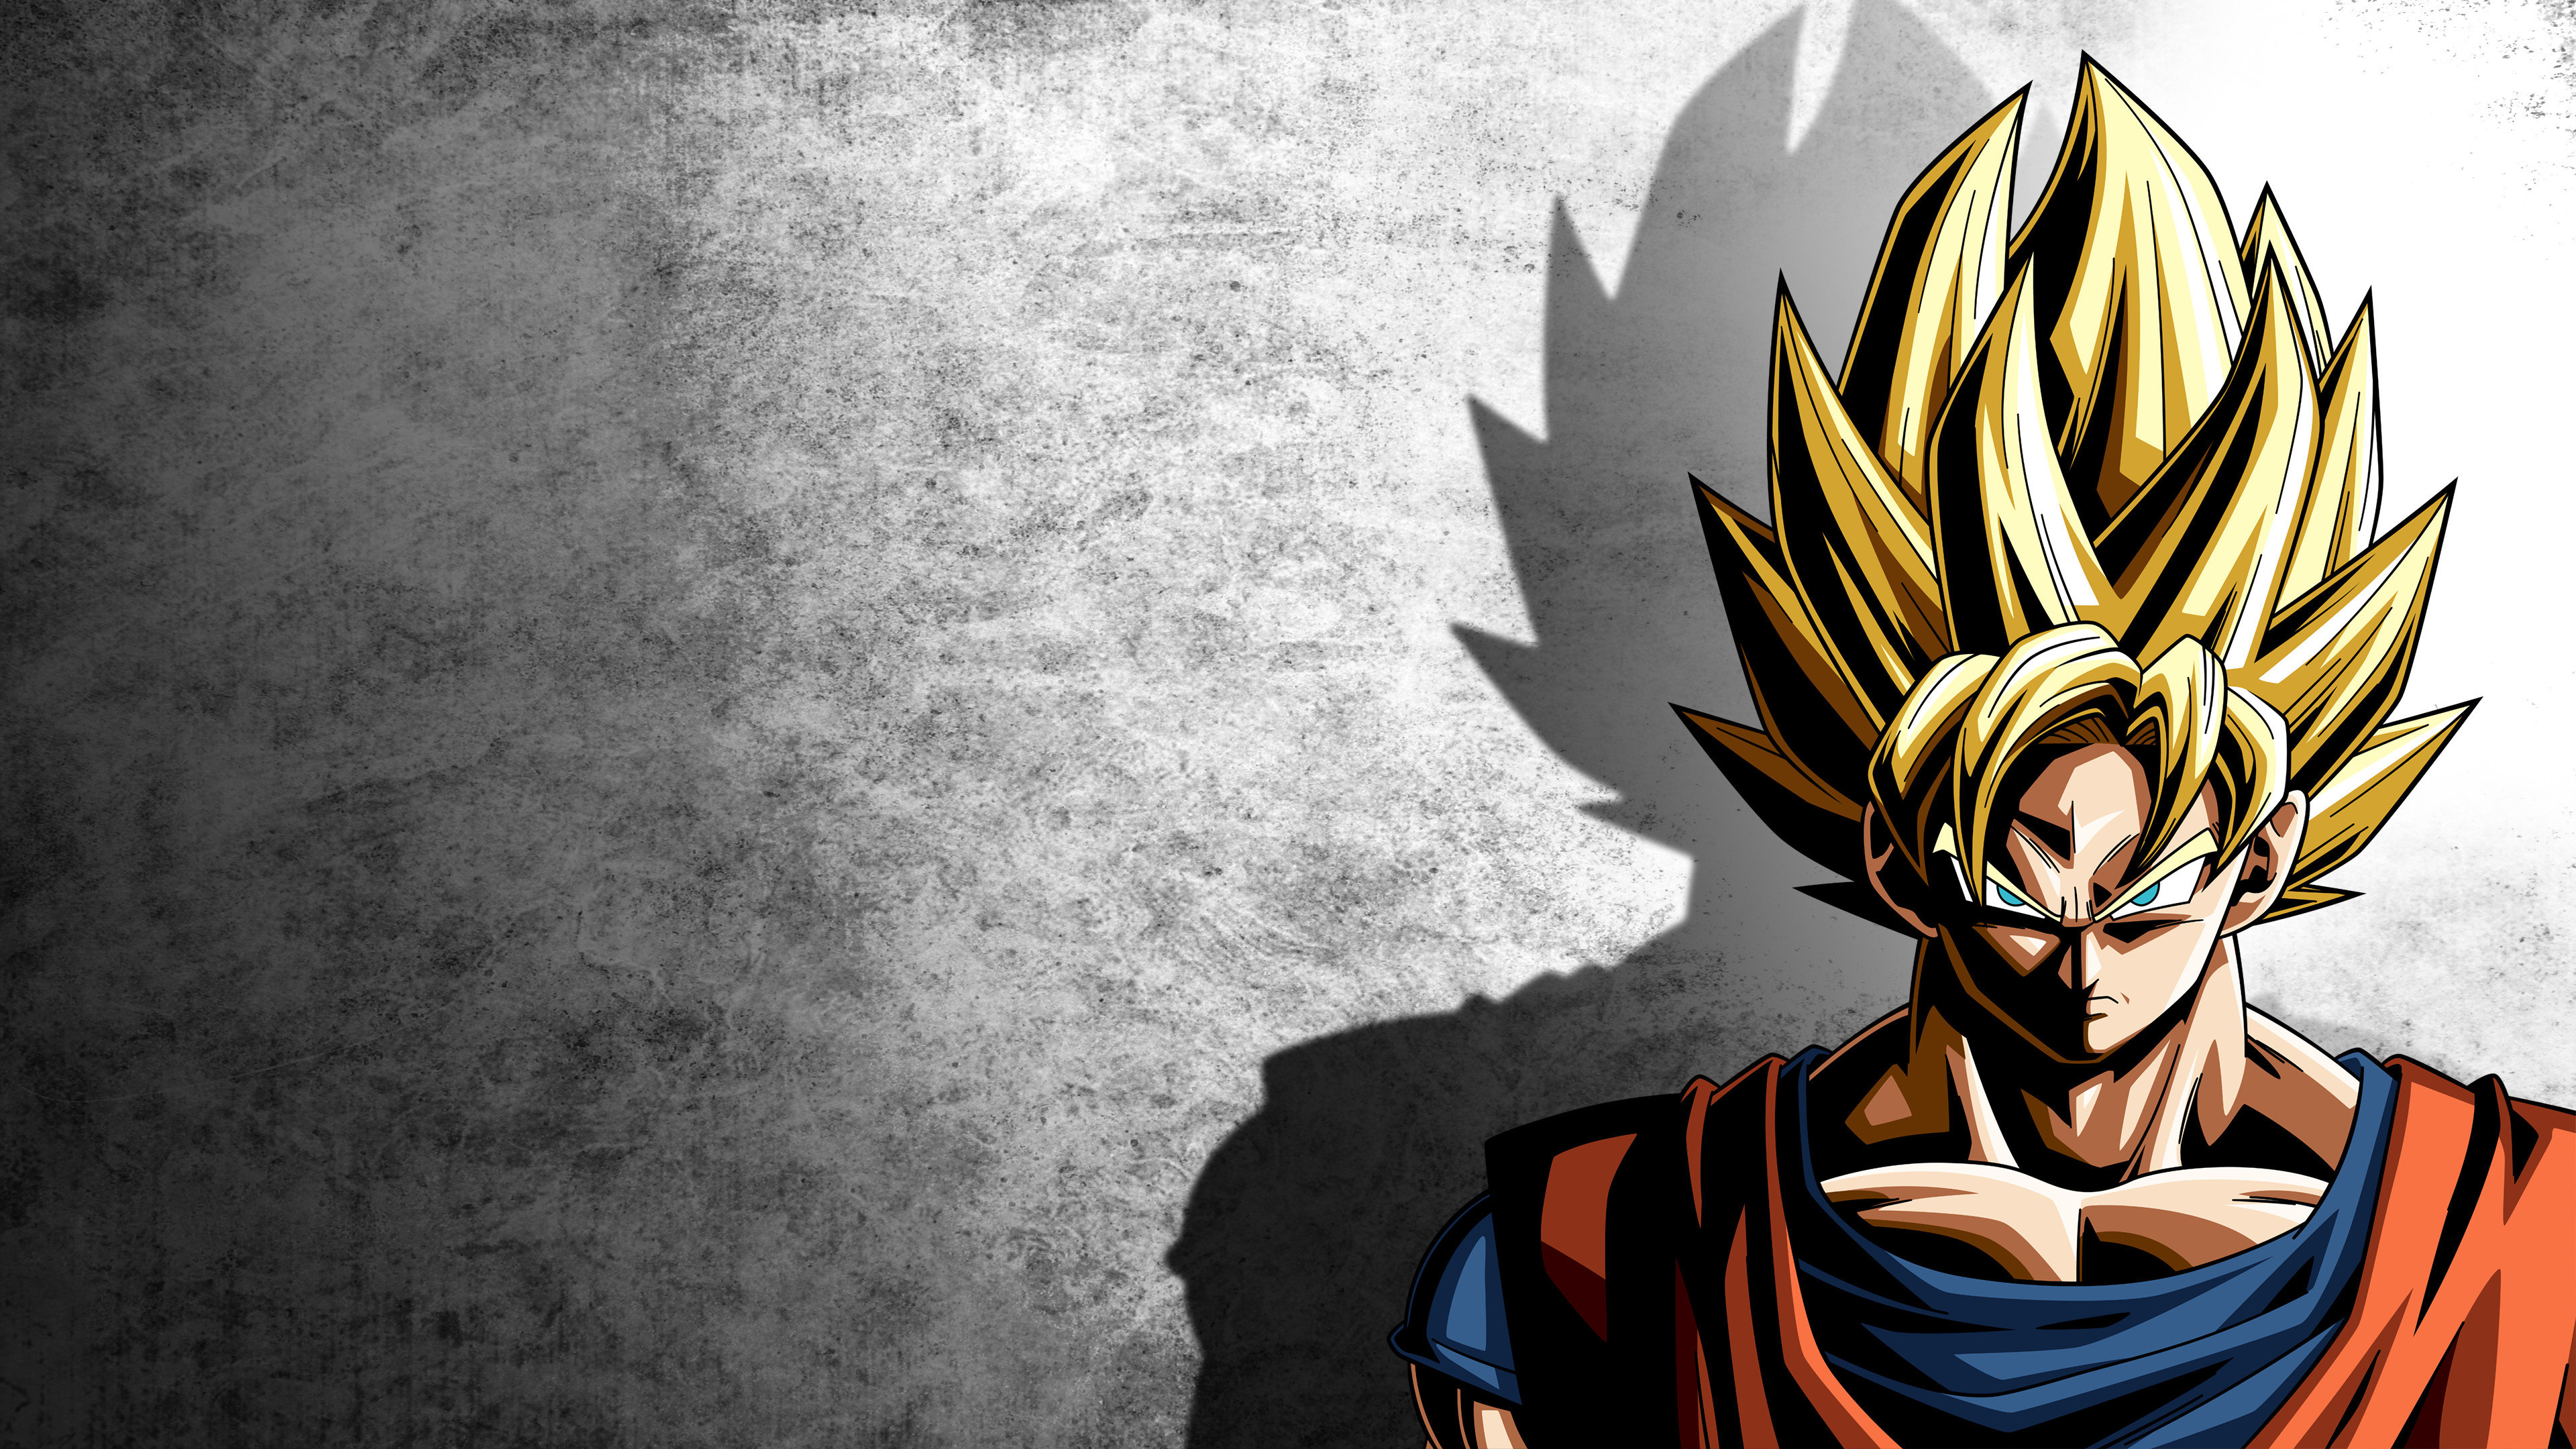 Awesome Goku free wallpaper ID:462377 for ultra hd 4k desktop